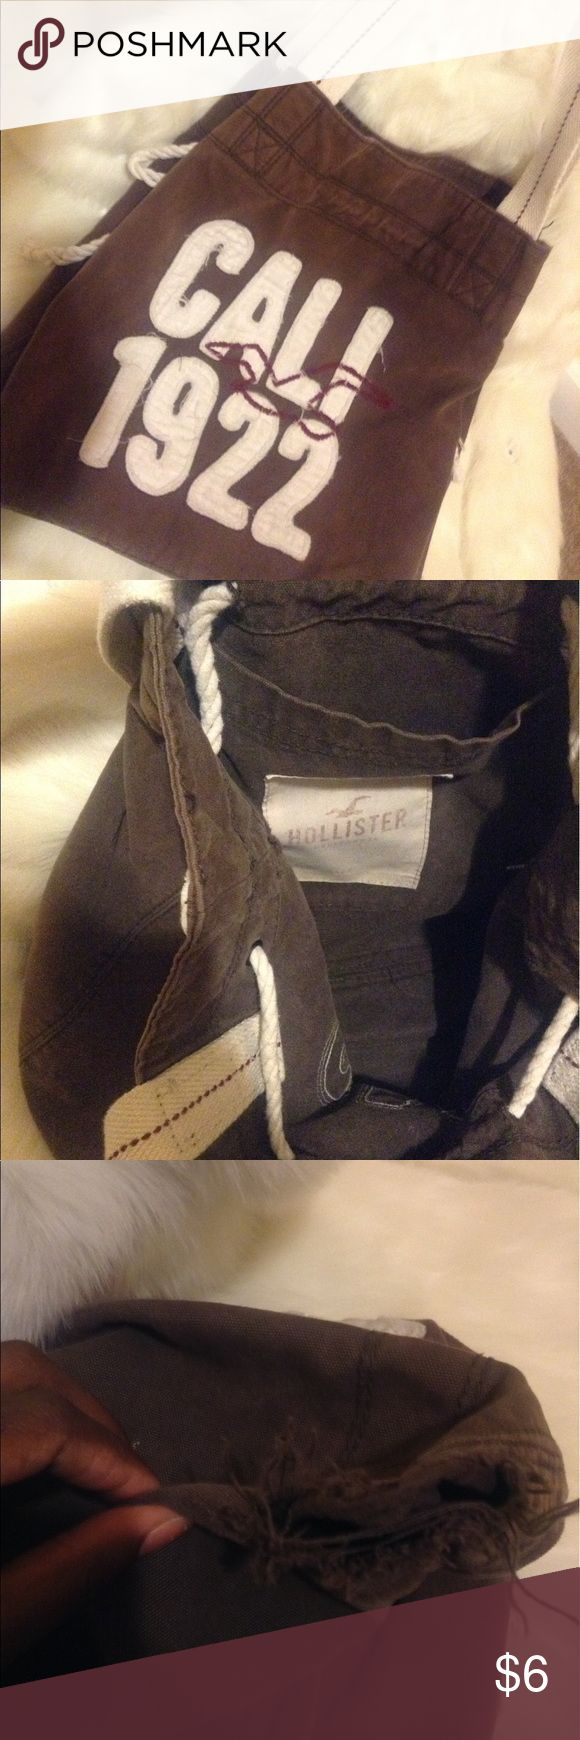 Distressed Hollister Tote Bag 🚫NO TRADE🚫 ❗️PRICE FIRM❗️ HAPPY POSHING 😘 Hollister Bags Totes